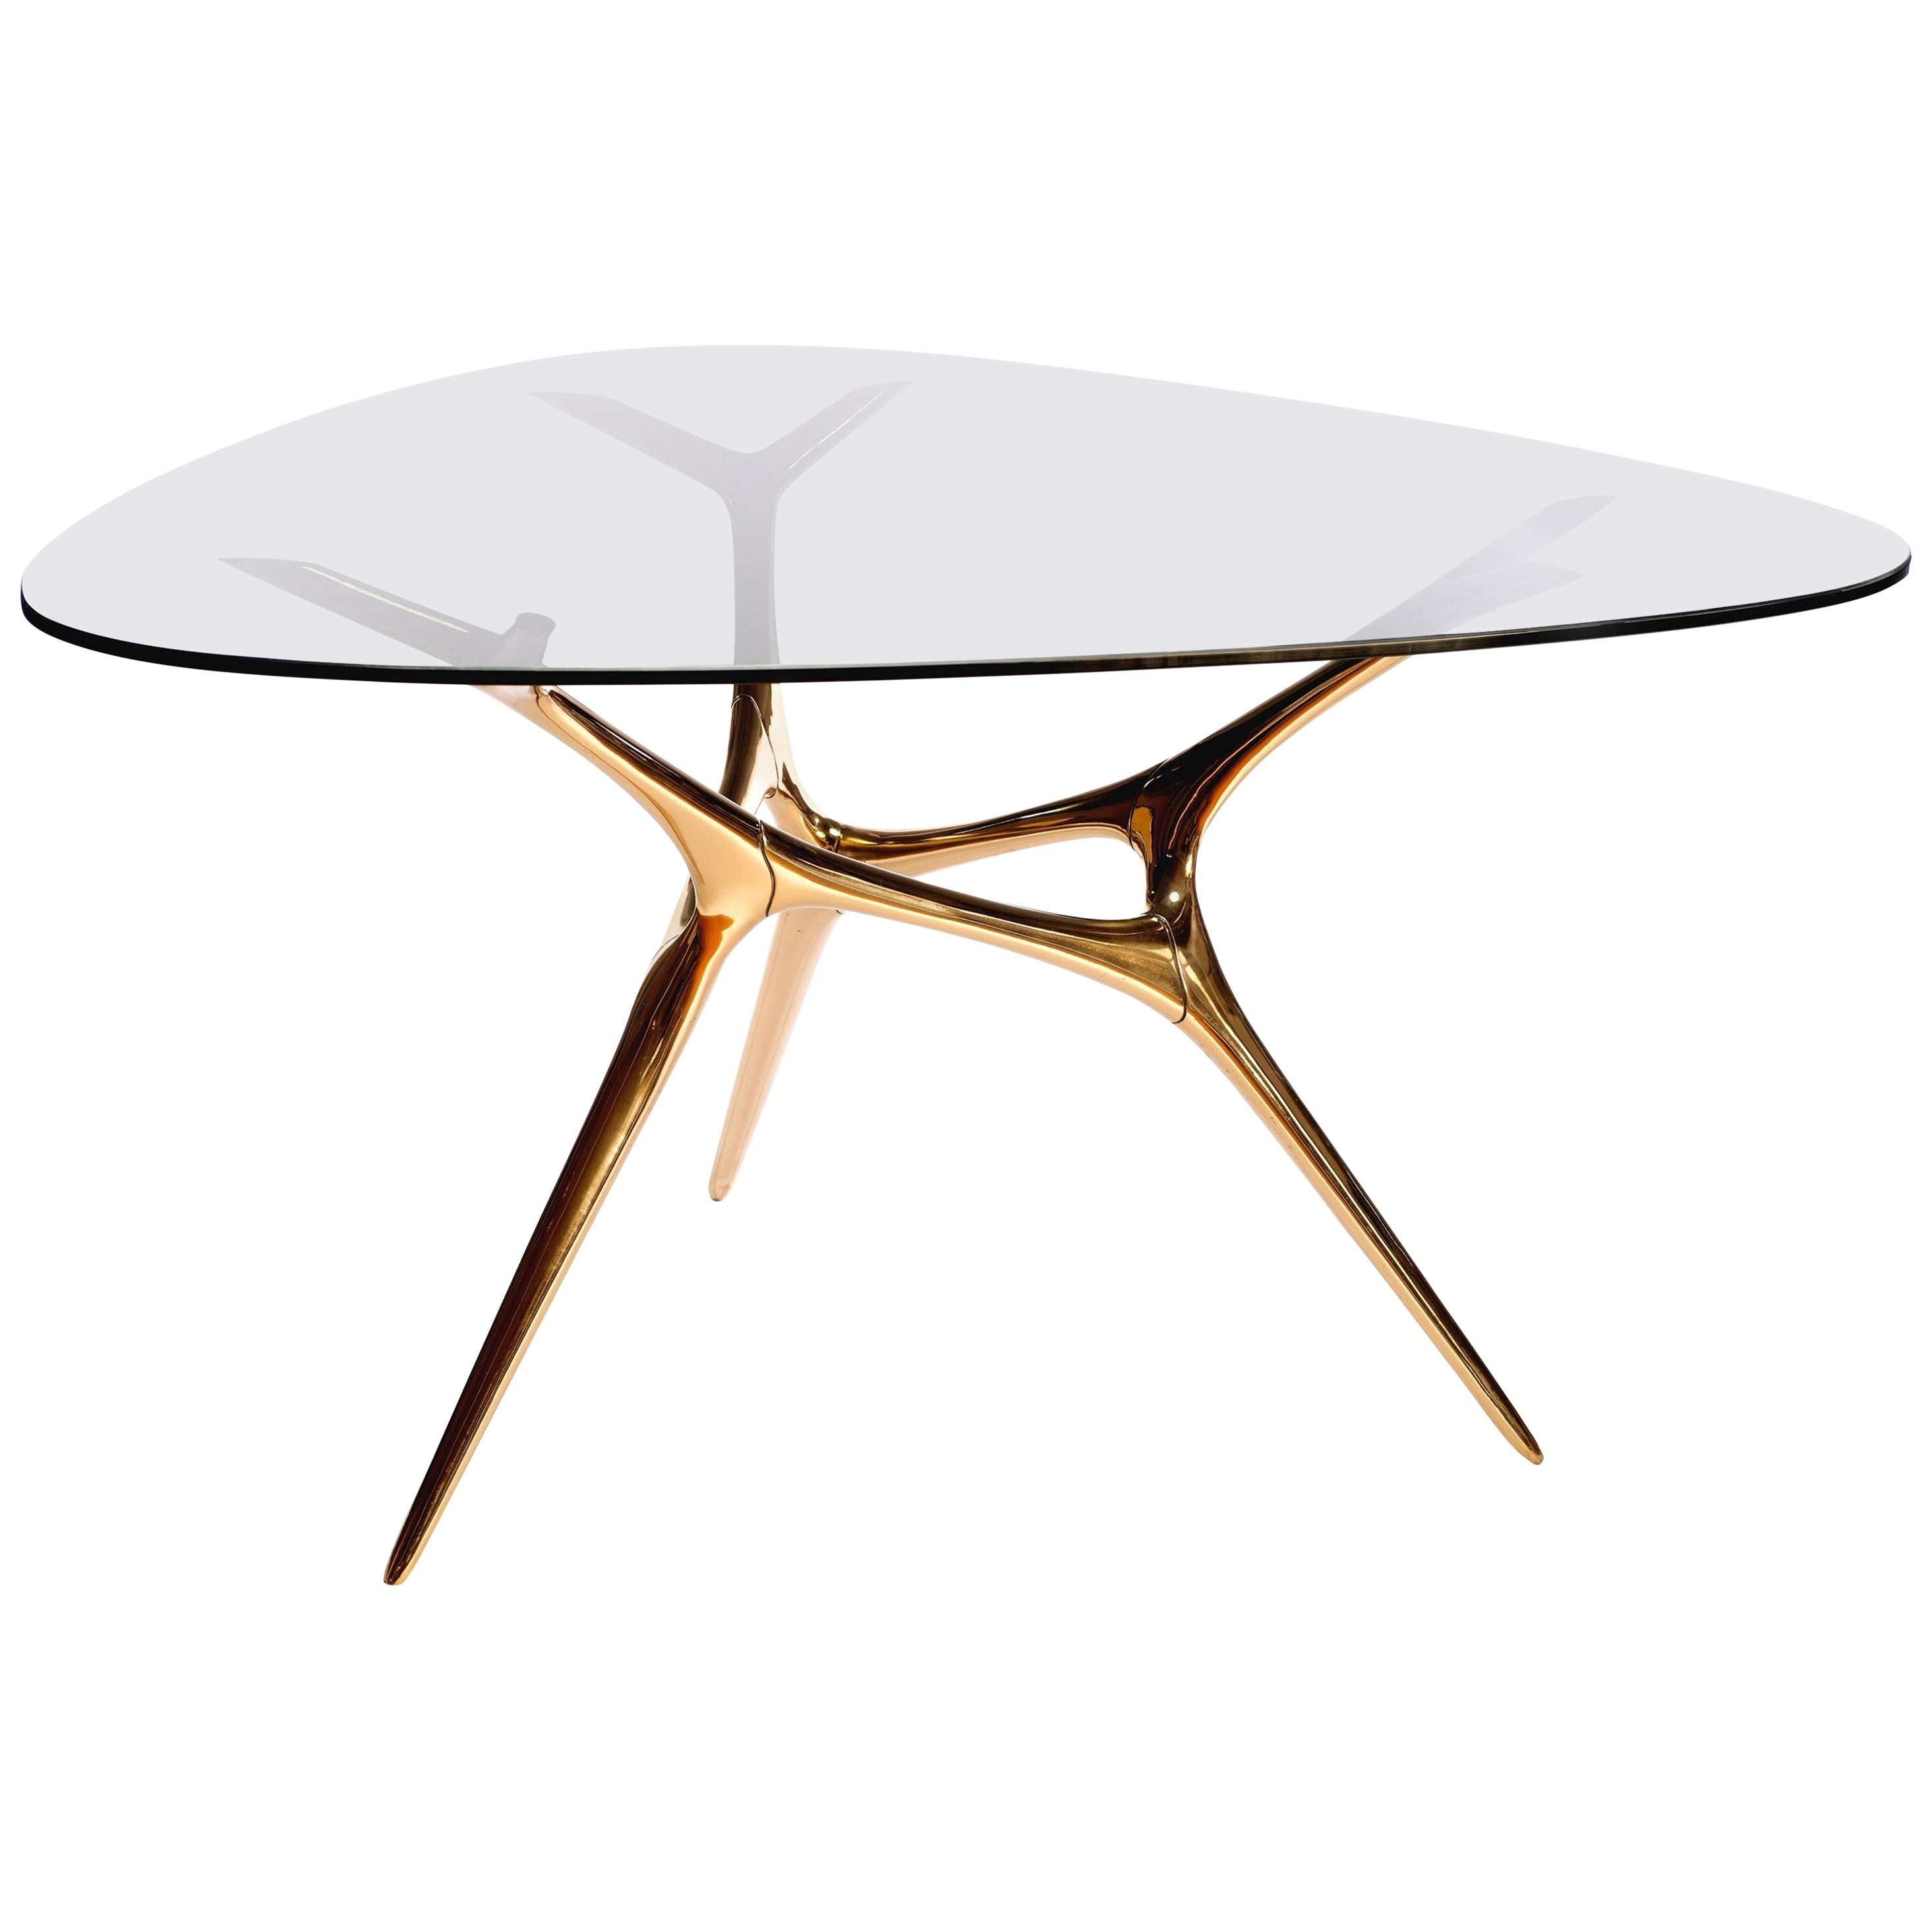 E-Volved Table by Timothy Schreiber